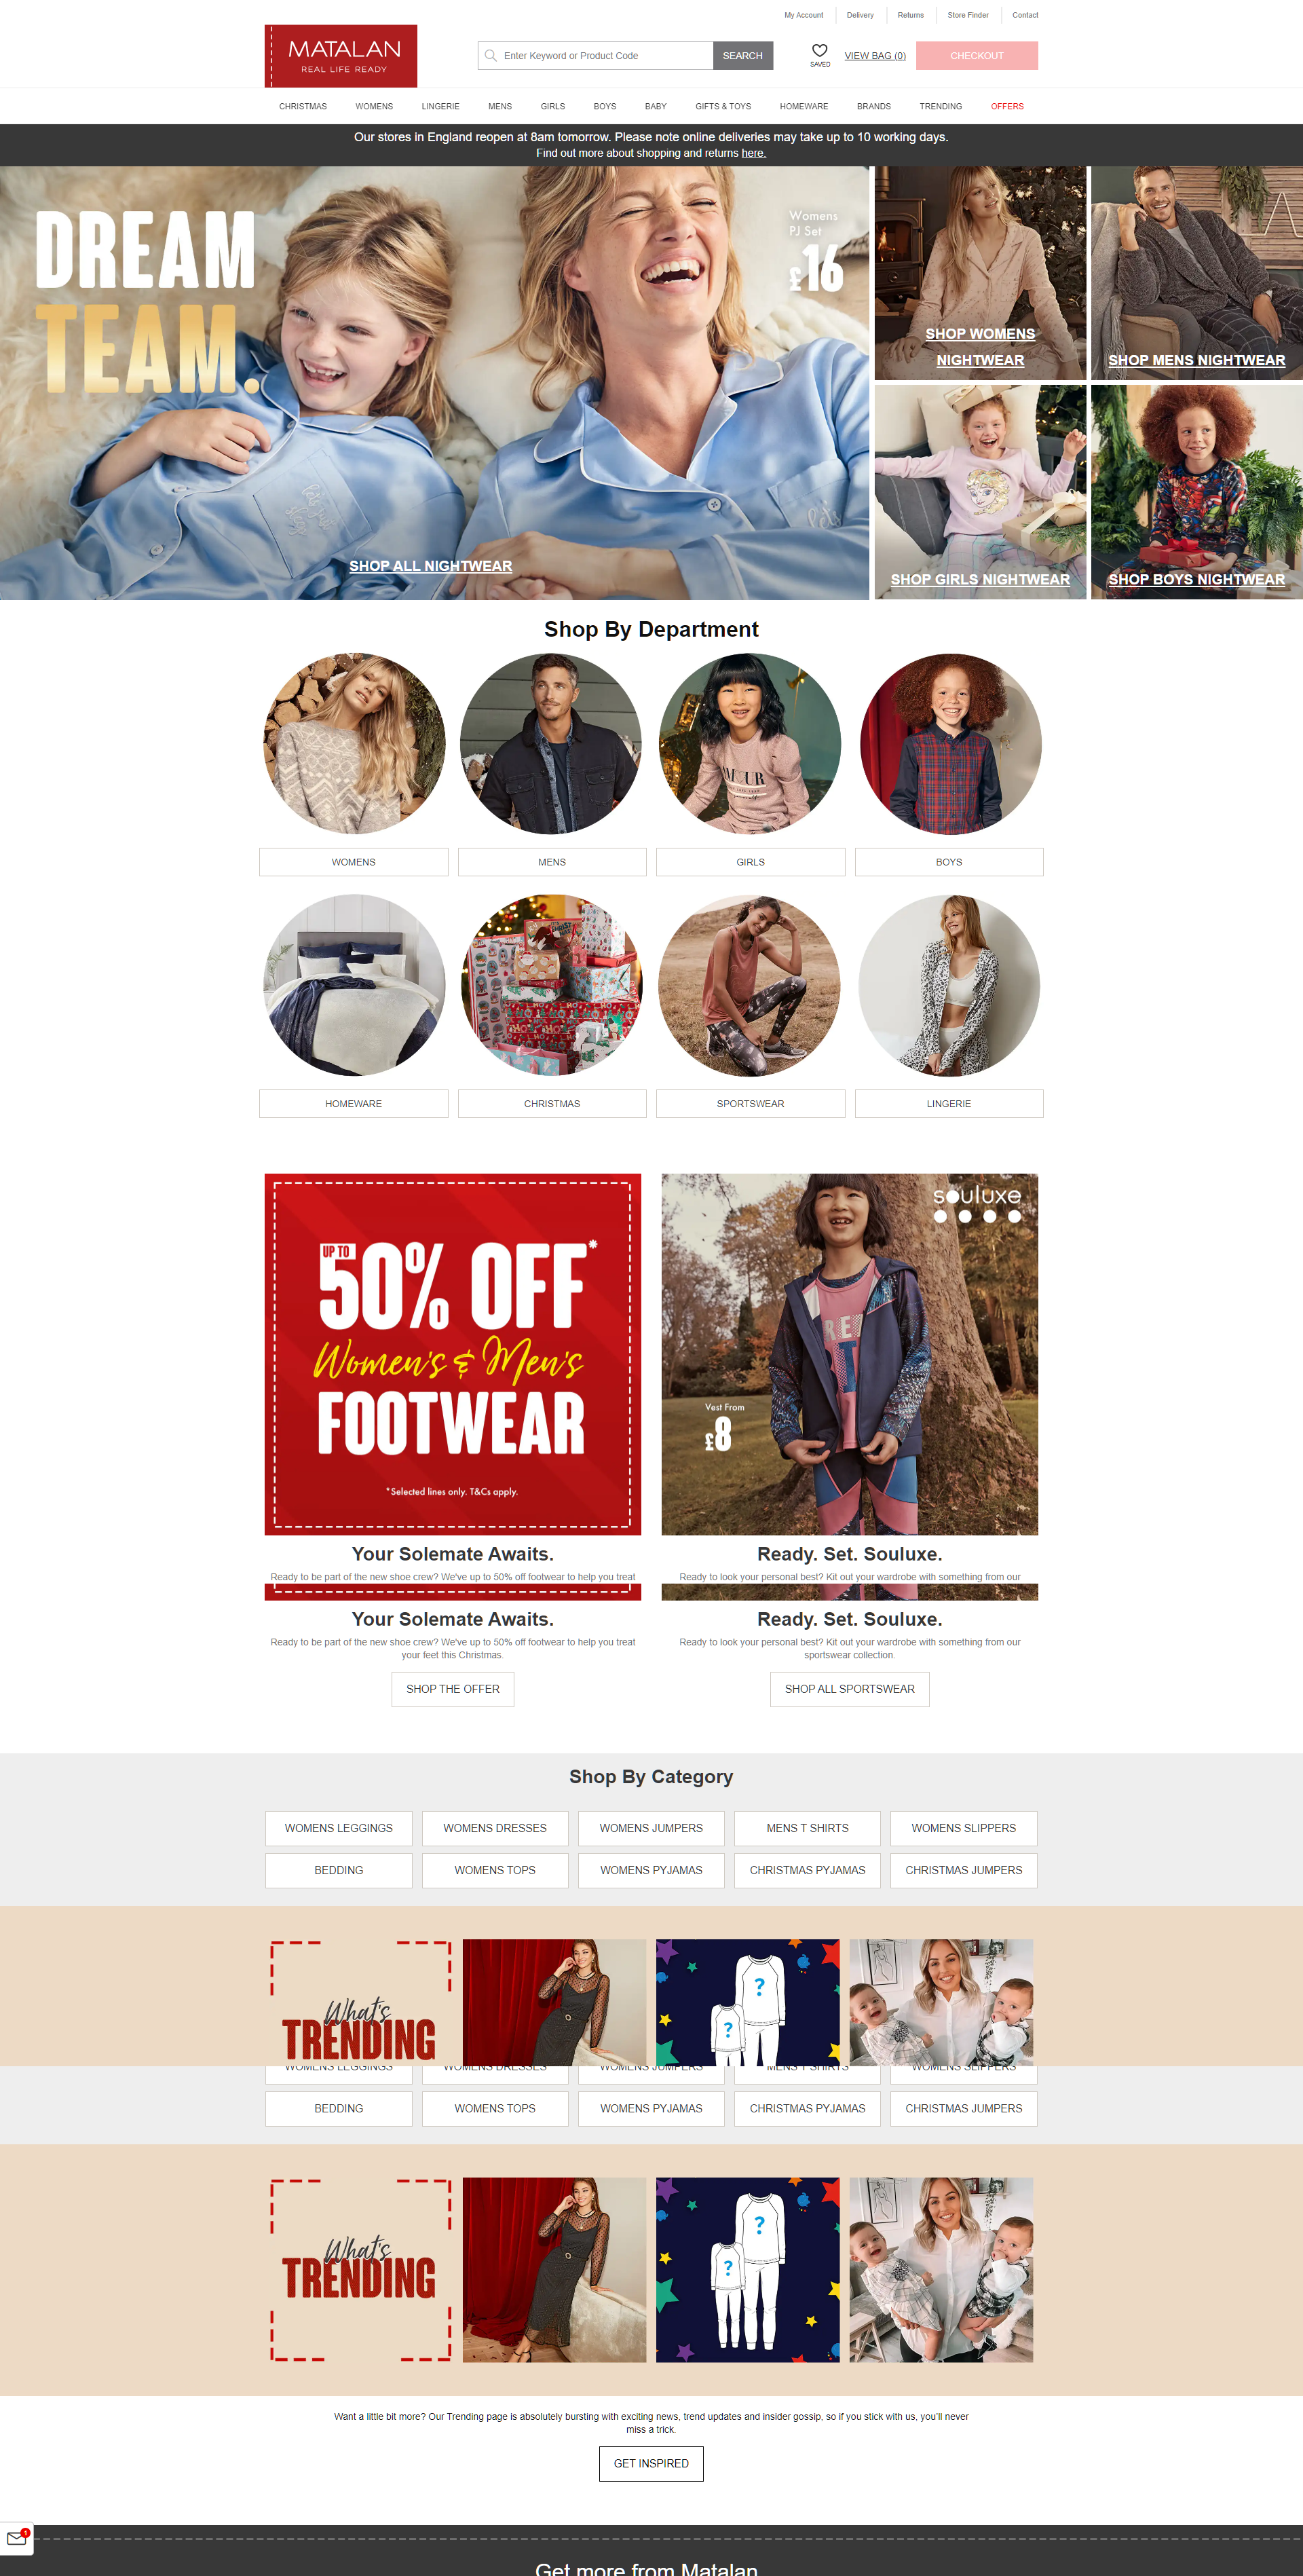 Matalan screenshot of website homepage with link to it